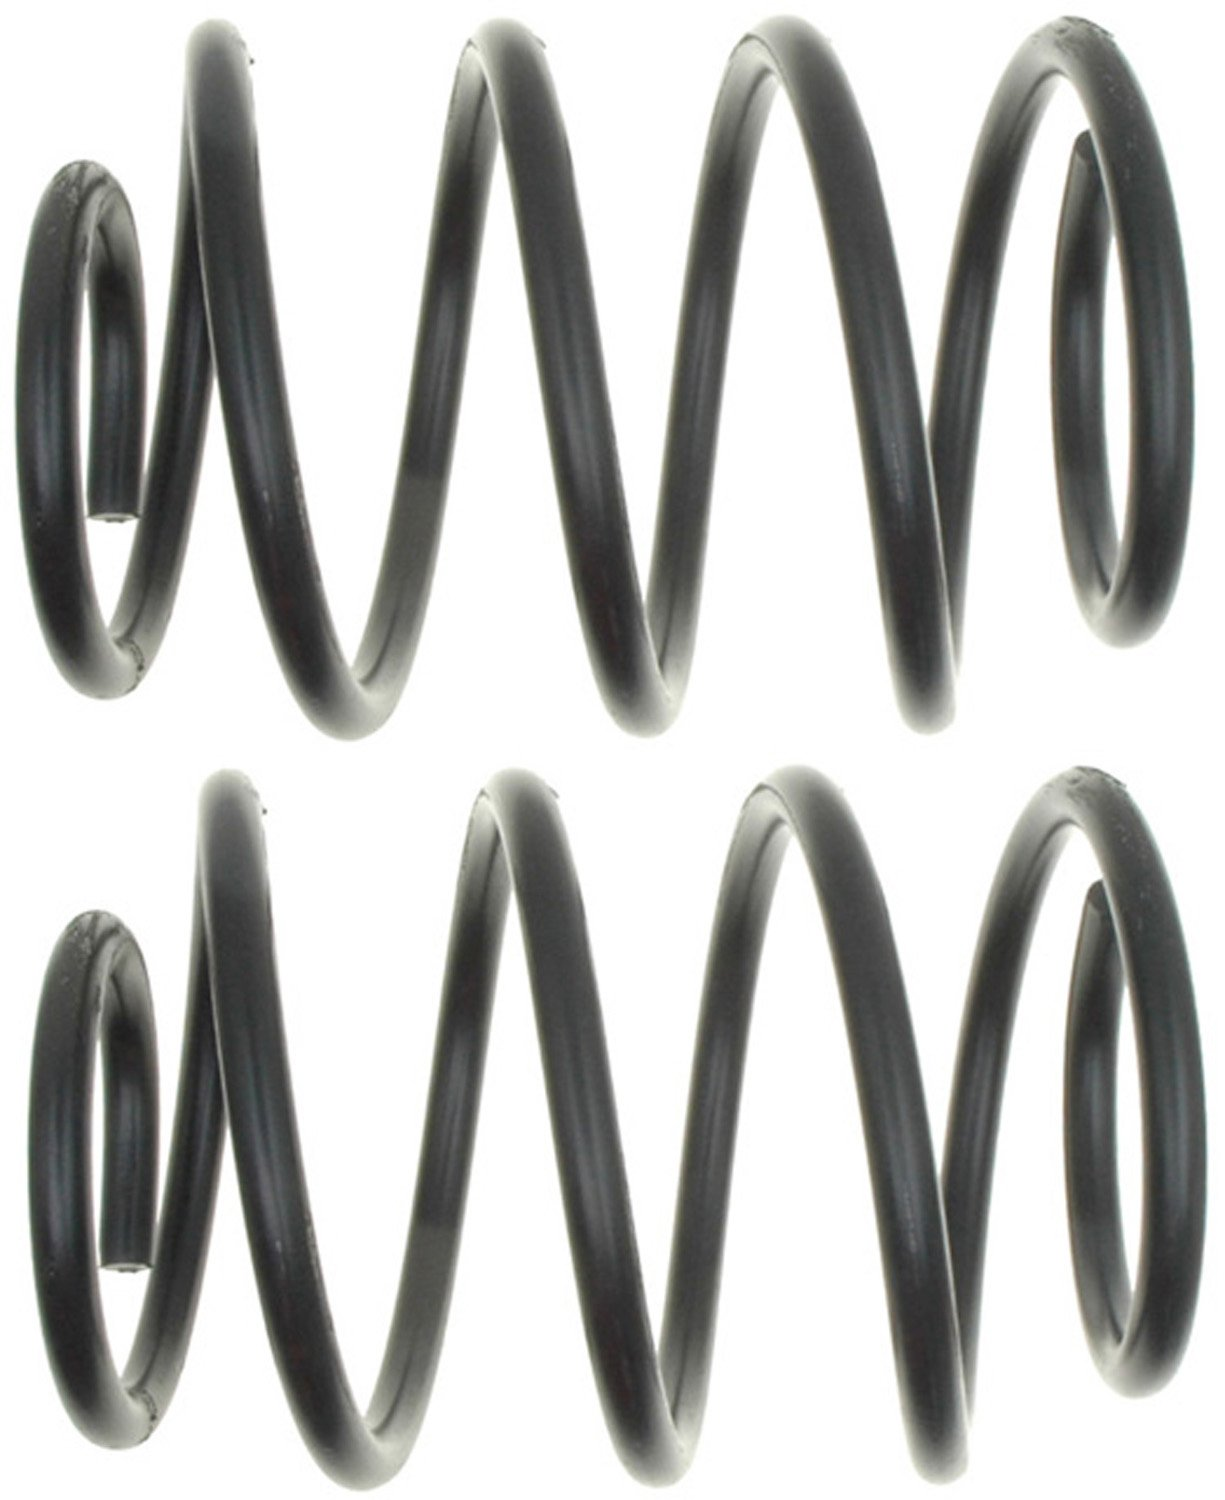 ACDelco 45H2137 Professional Rear Coil Spring Set